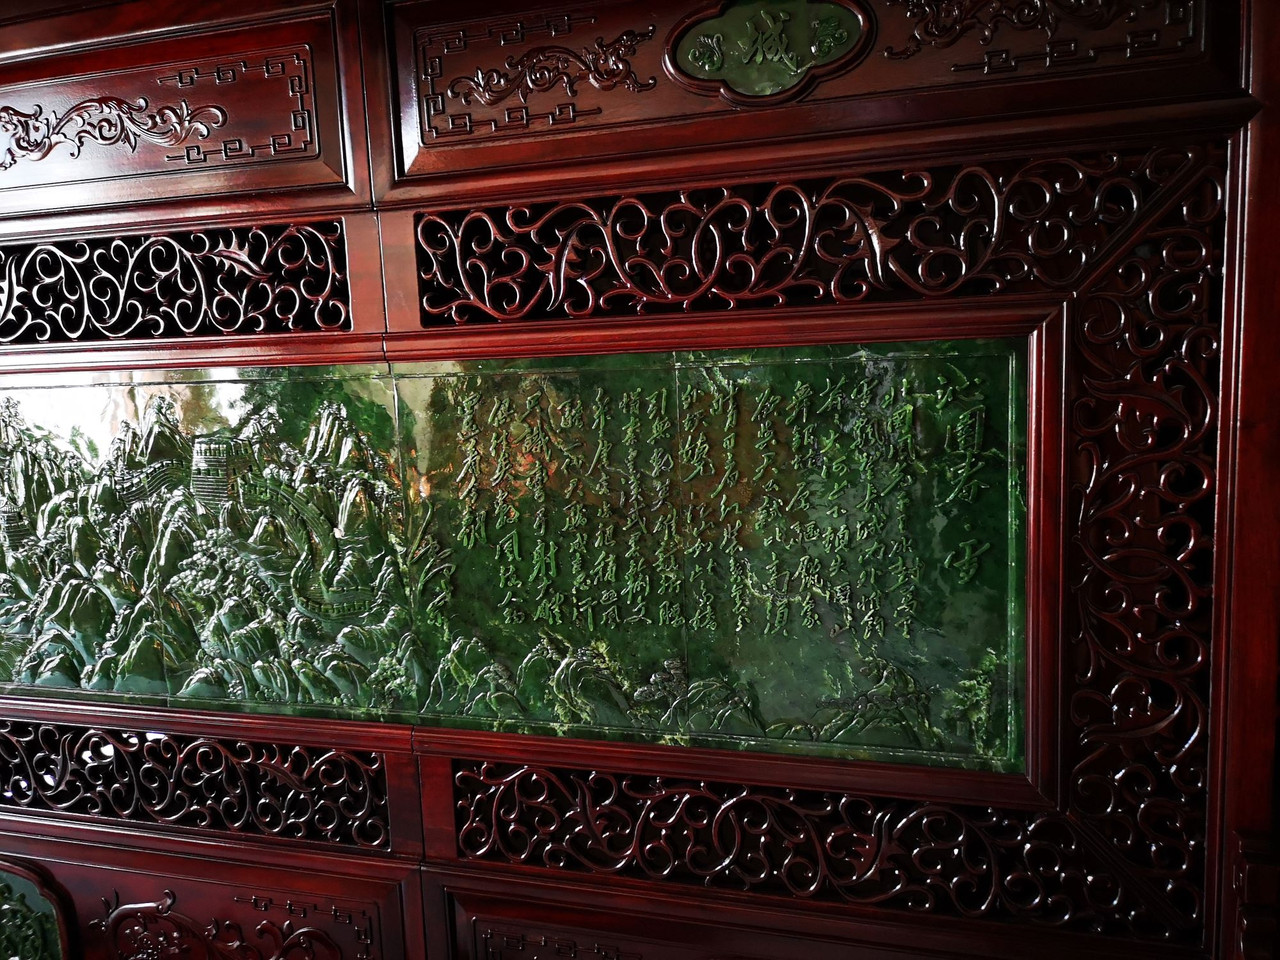 Green Jade The Great Wall